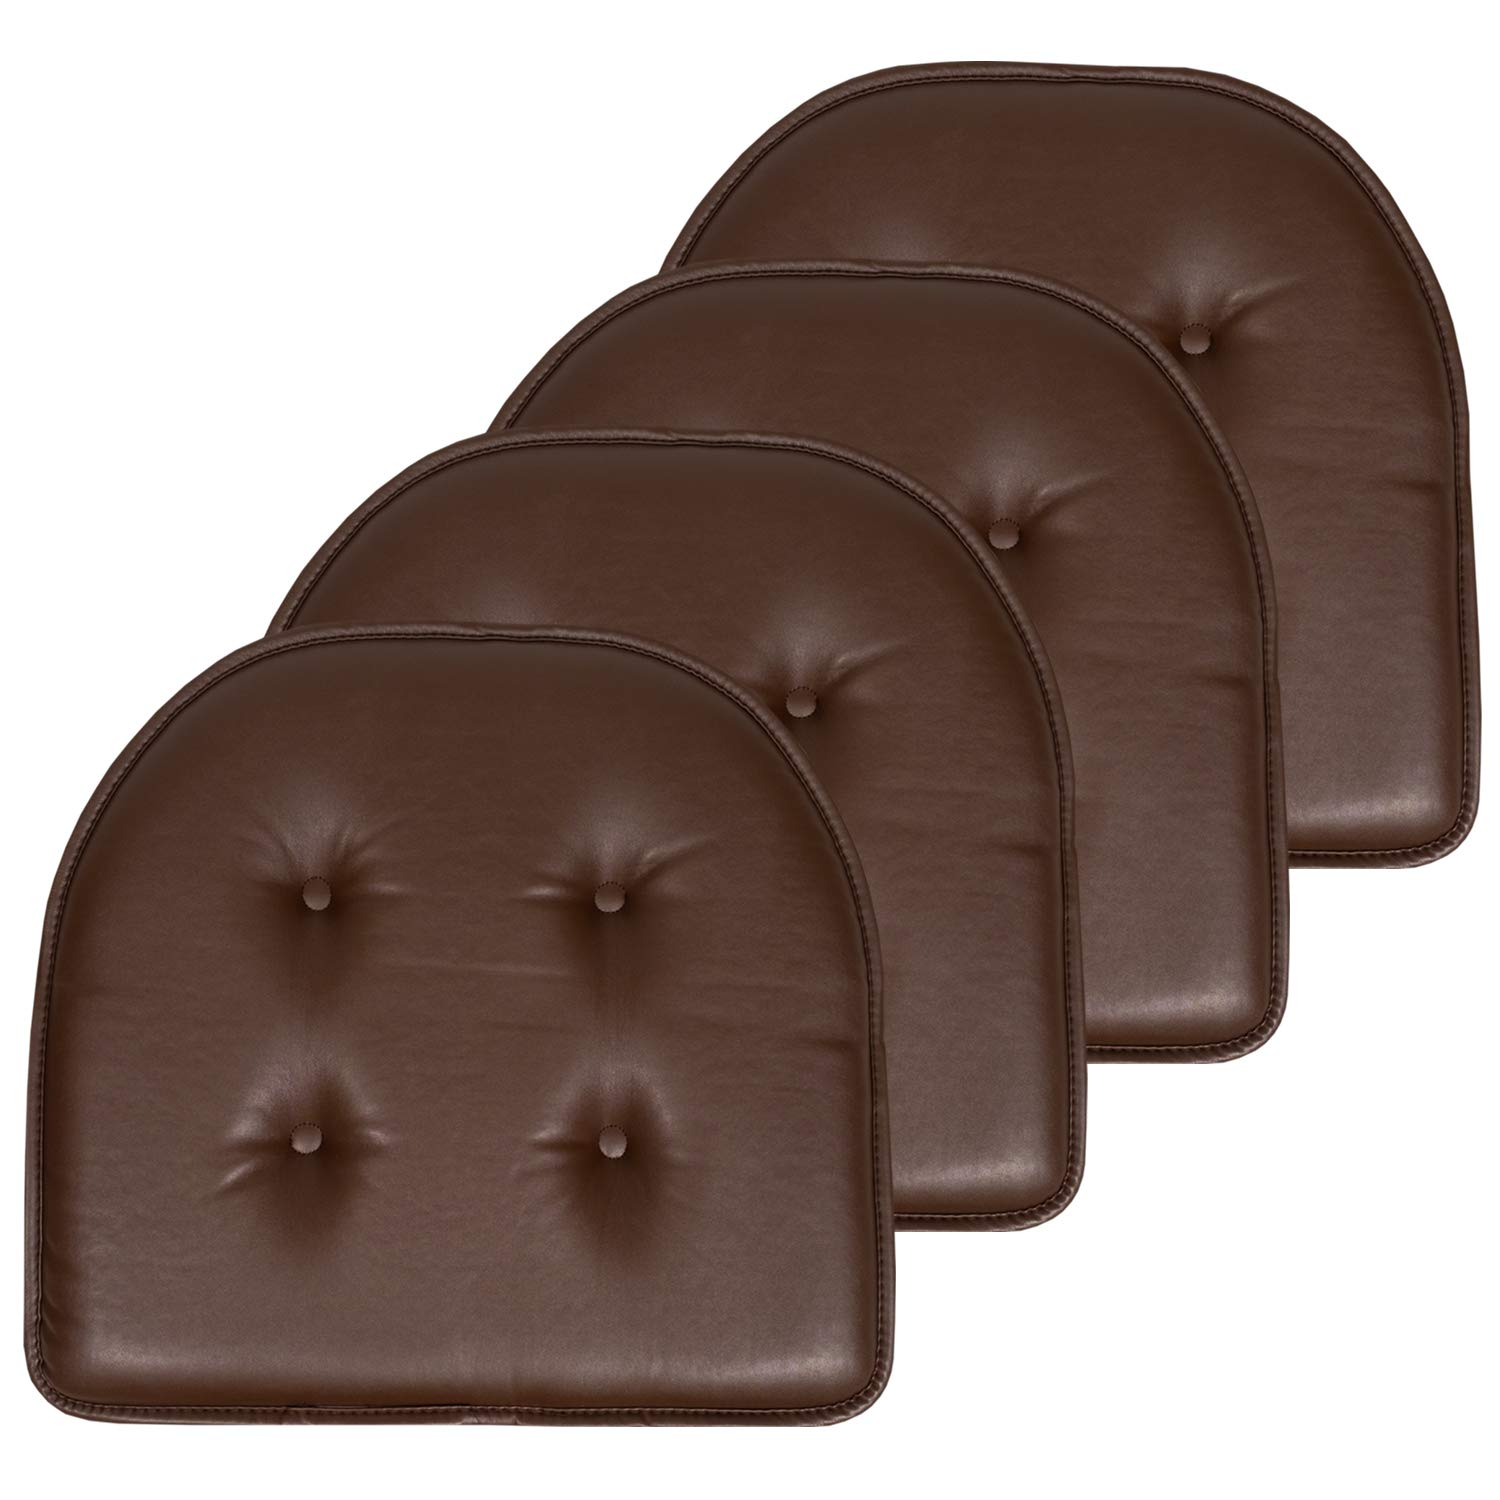 "Sweet Home Collection Chair Cushion Memory Foam Pads Faux Leather Upholstered Tufted U Shaped Non-Slip Back 17"" x 16"" Seat Cover, 4 Pack, Chocolate Brown"